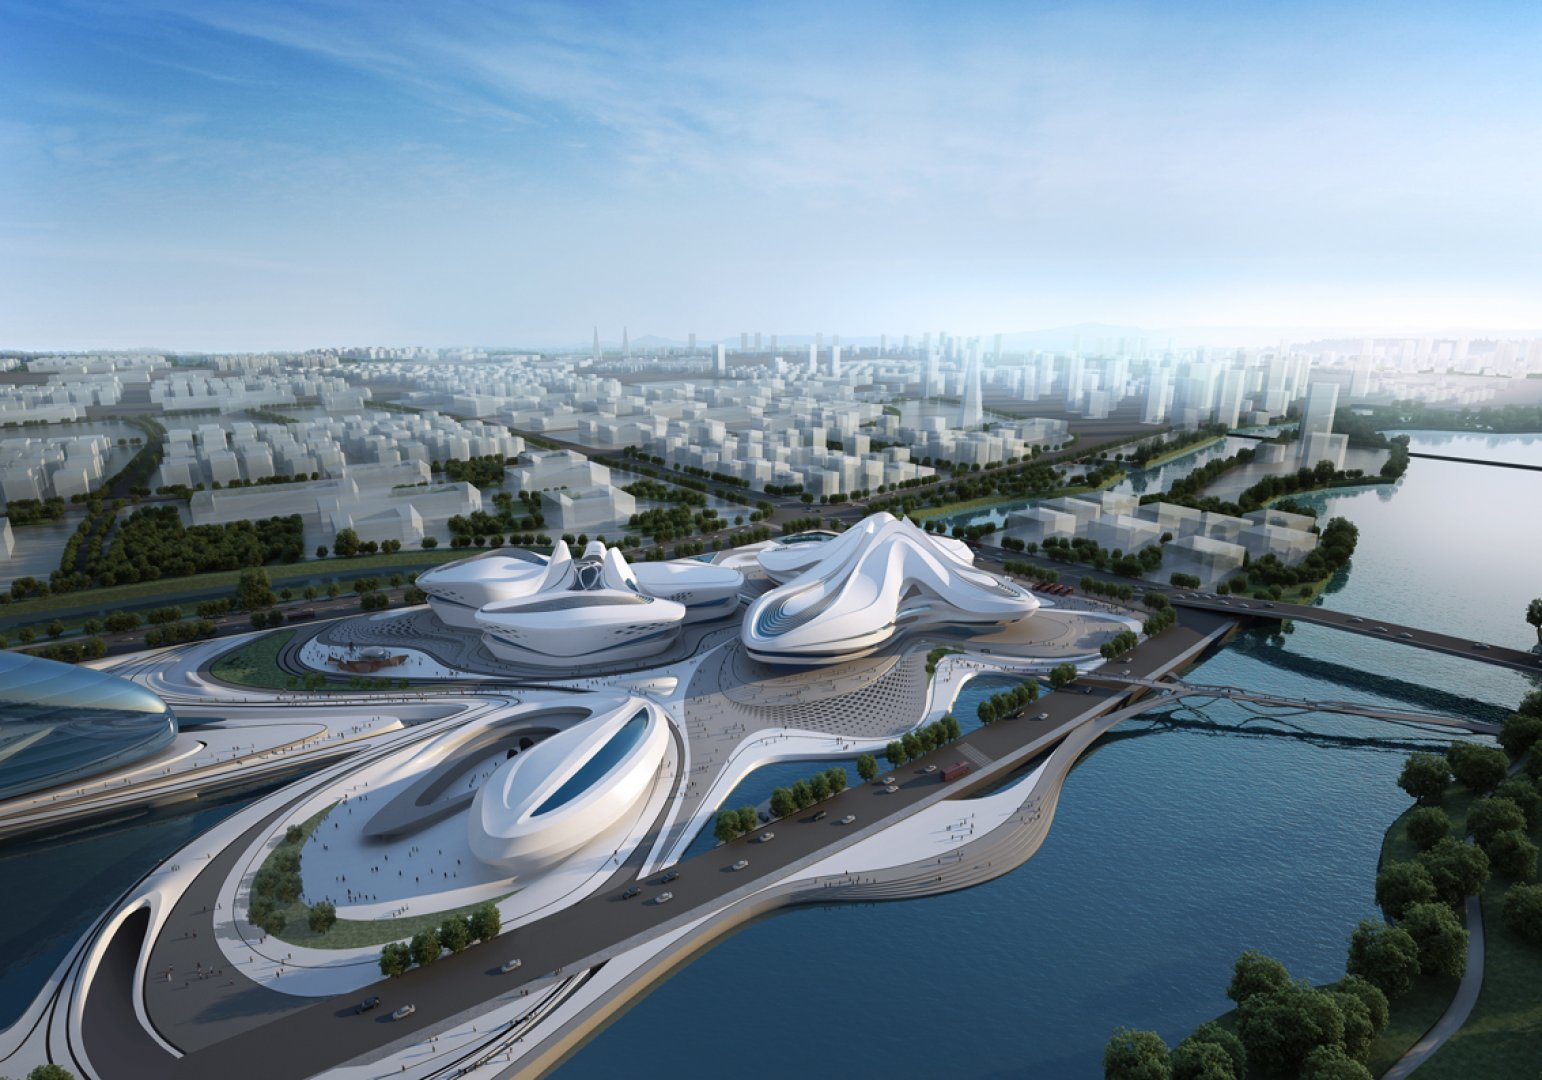 Modern_Architecture_By_Zaha_Hadid_Architects_Changsha_Meixihu_International_Culture_&_Arts_Centre_in_china_on_world_of_architecture_01